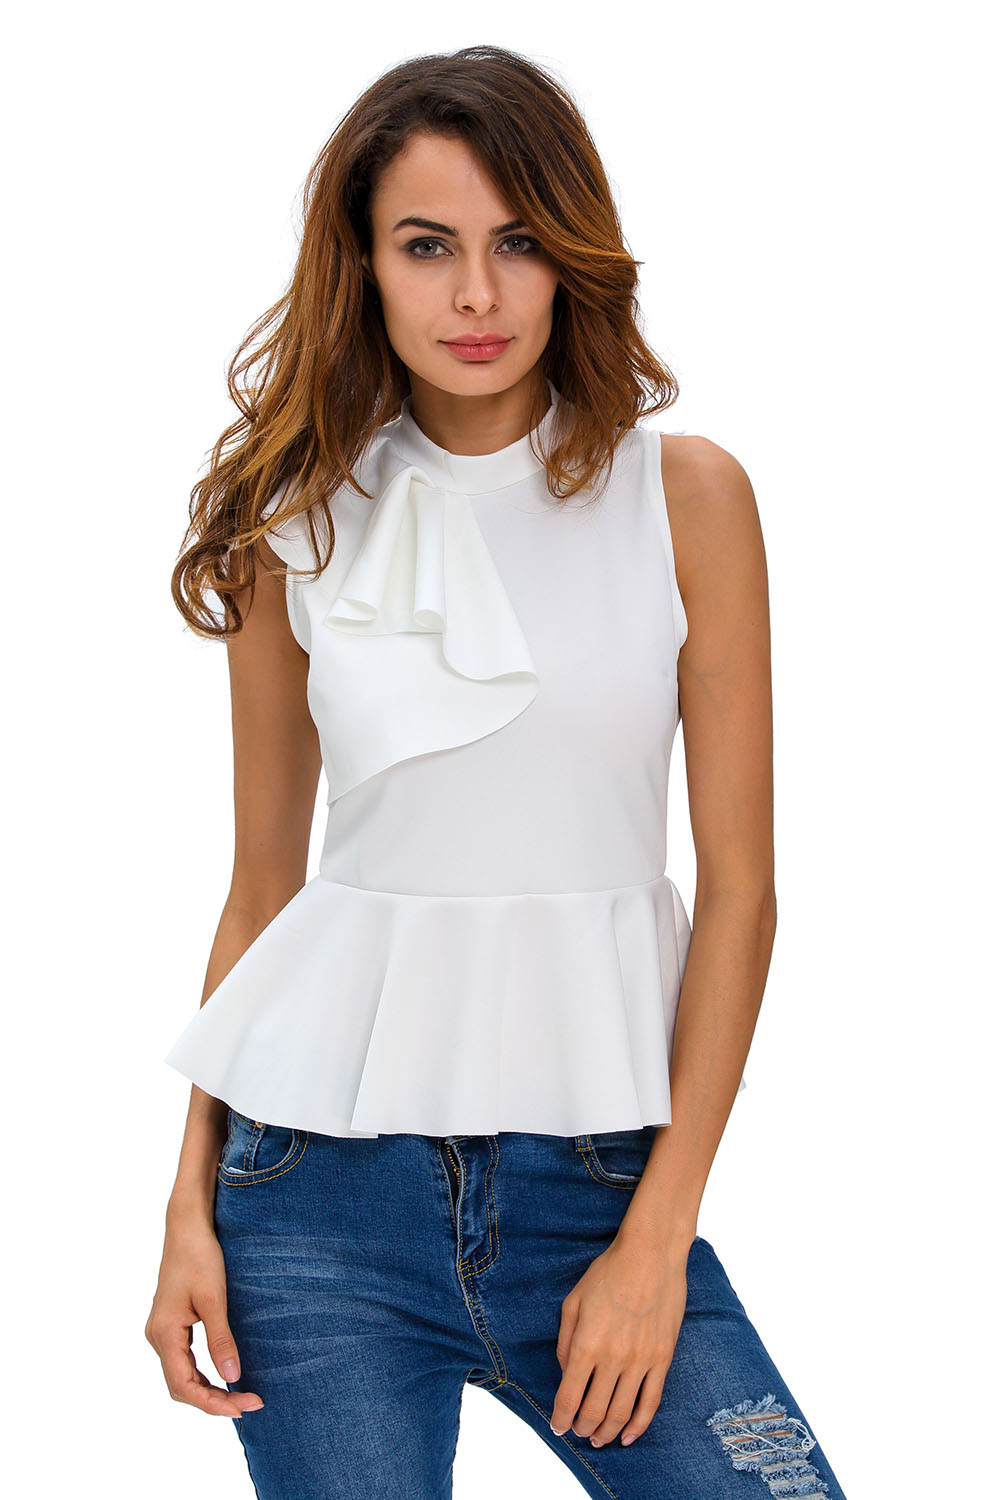 Ruffle Sleeveless Shirt (Us 2-12)